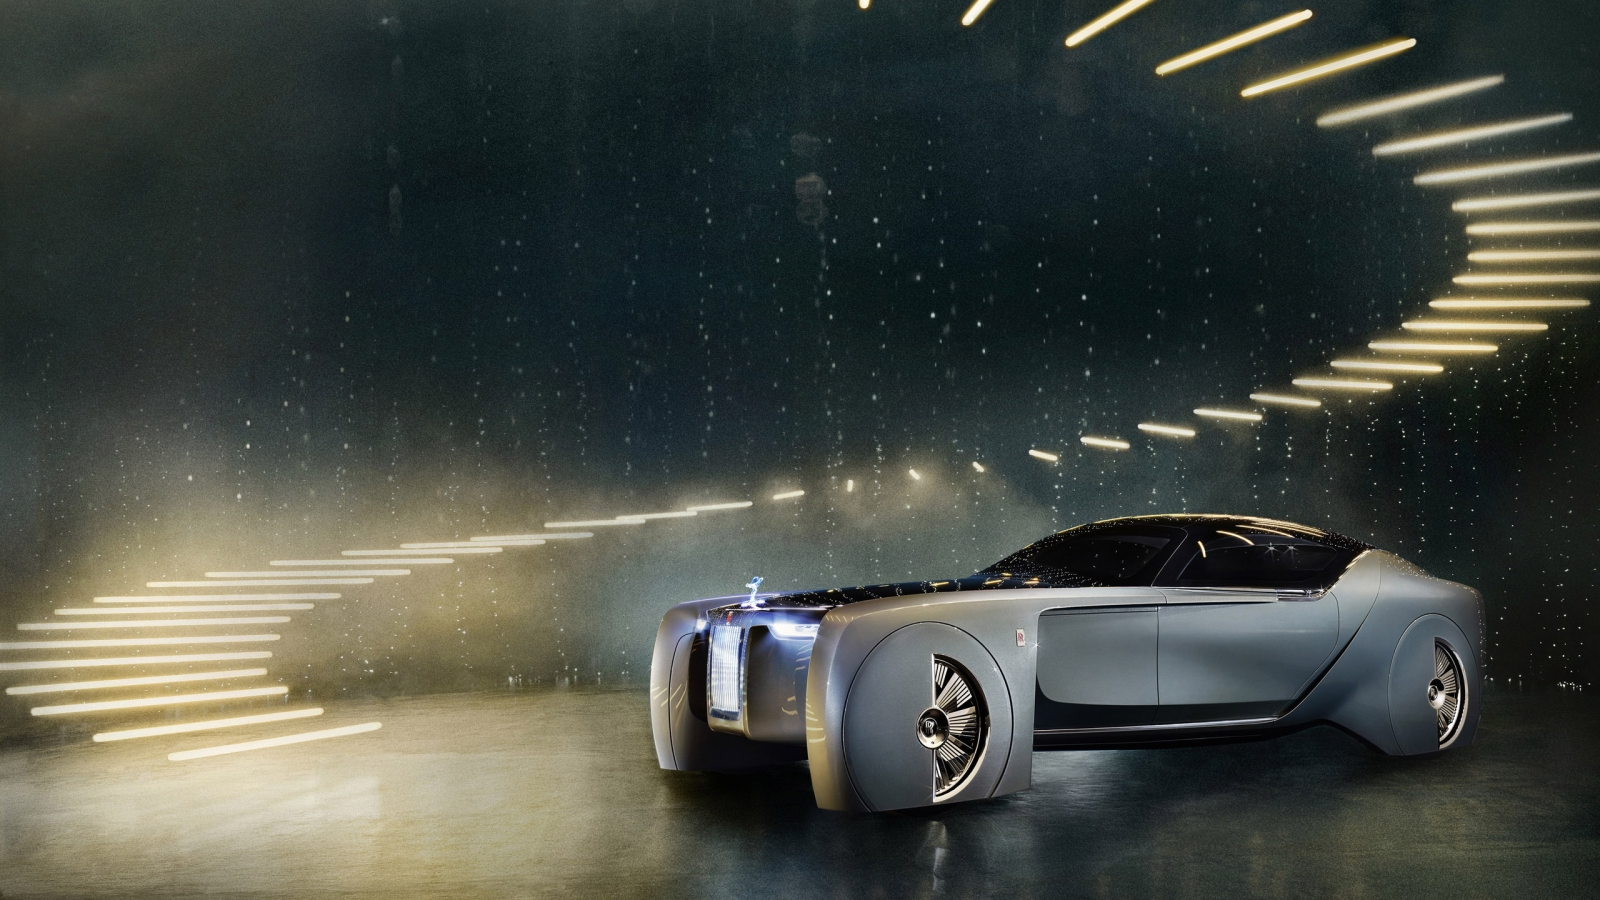 Rolls-Royce Concept Car 2016 for 1600 x 900 HDTV resolution